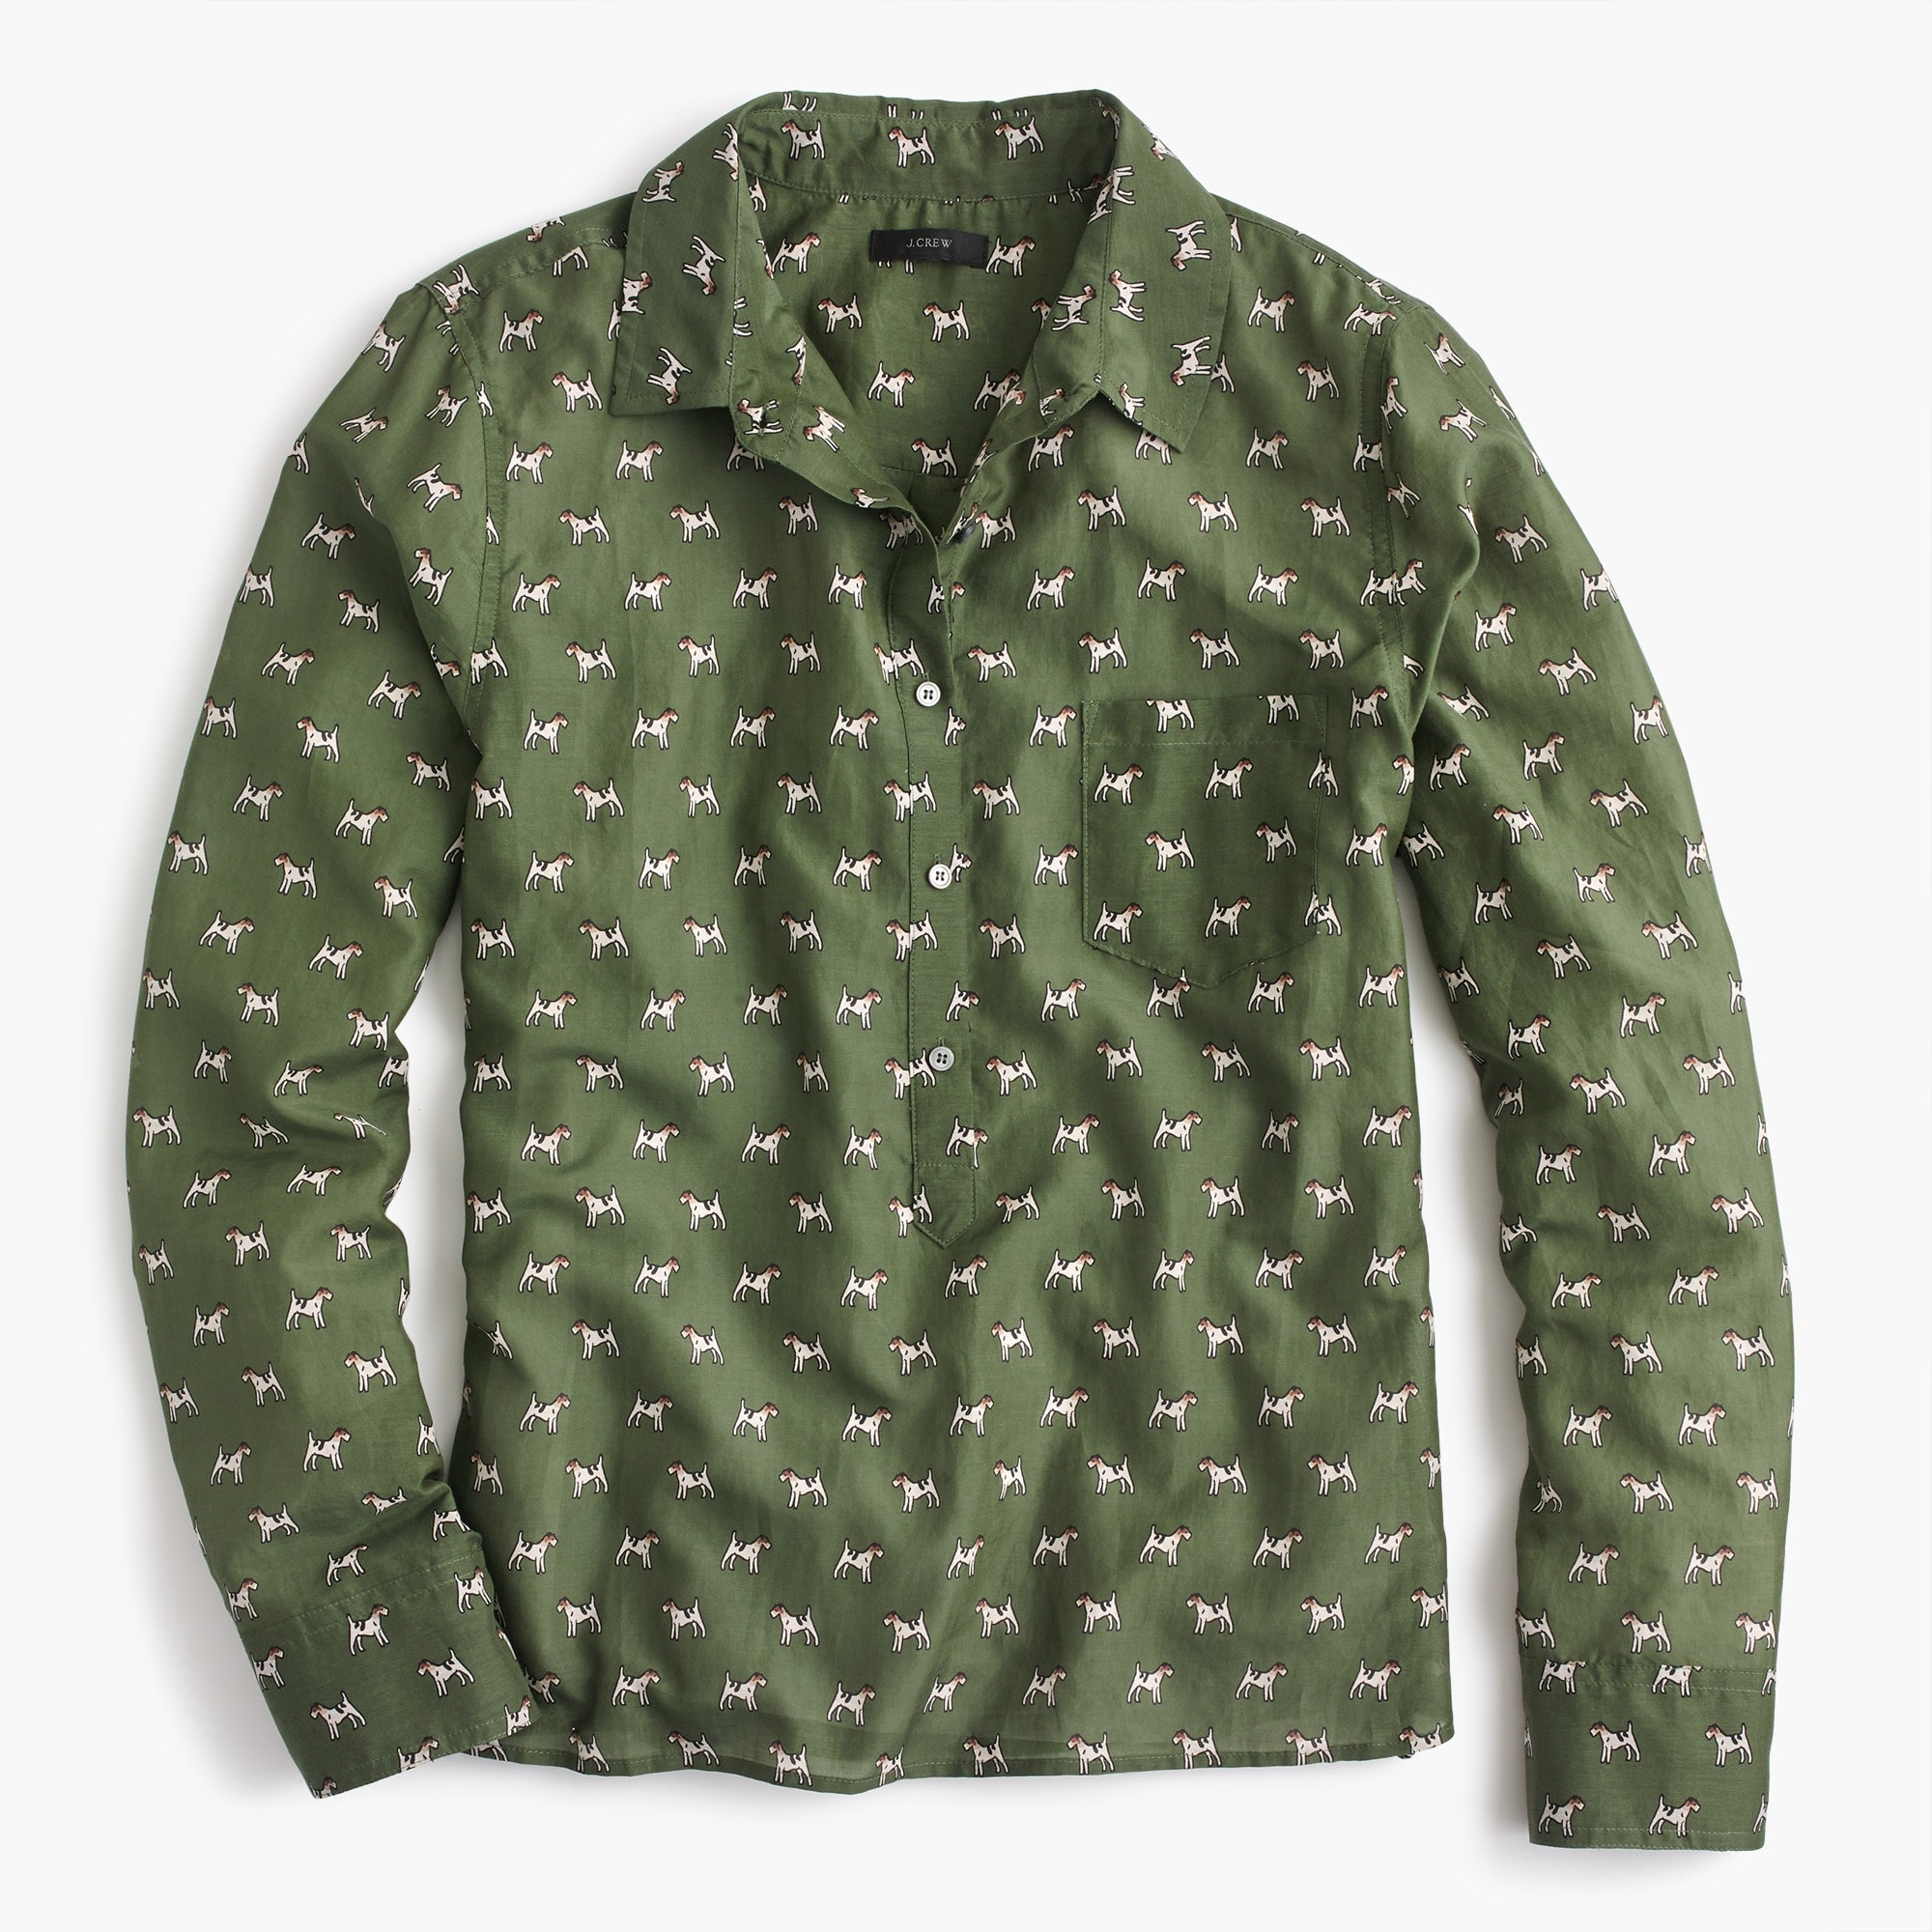 Image 2 for Popover shirt in Terrier print